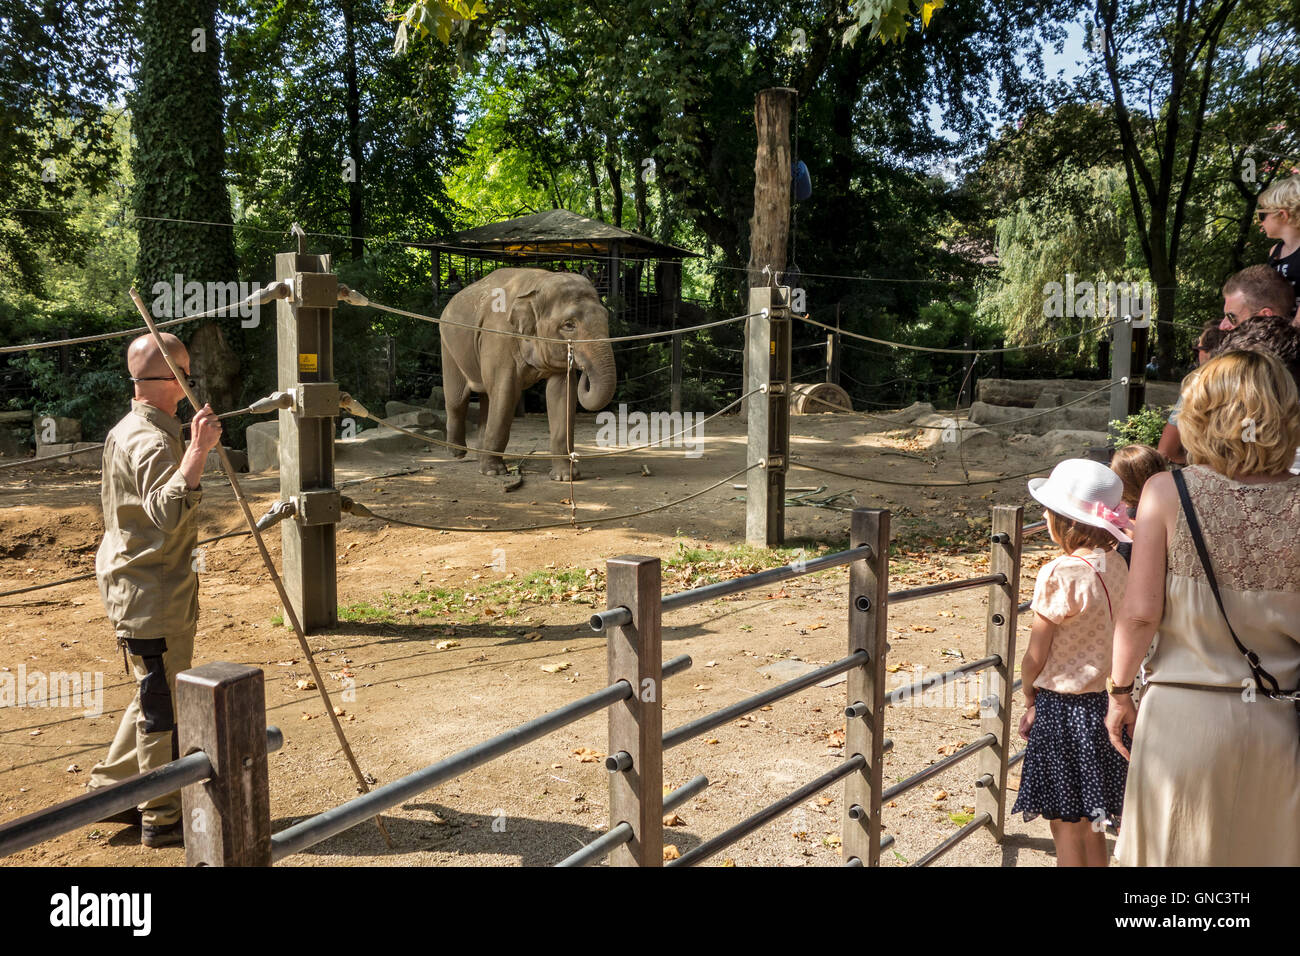 Zookeeper in enclosure with Asian elephants / Asiatic elephant (Elephas maximus) talking to visitors at the Antwerp - Stock Image